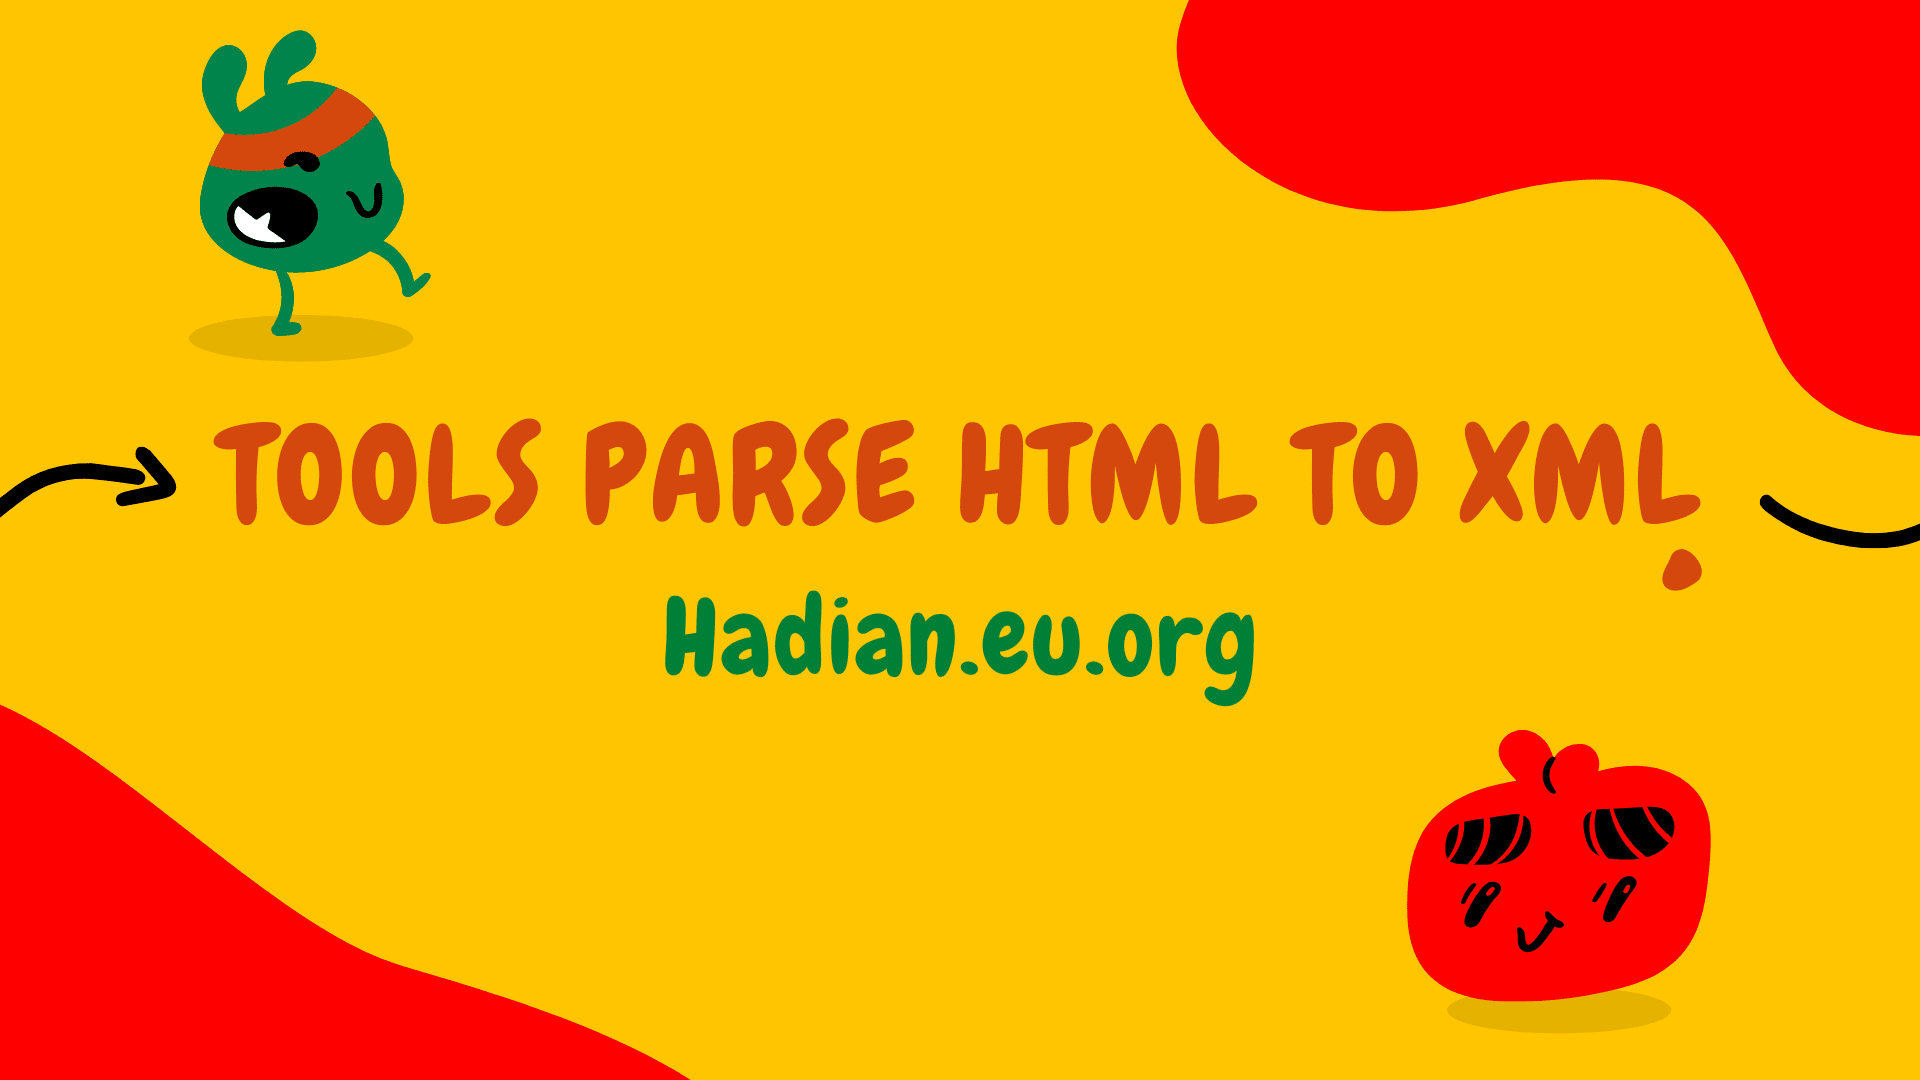 Tools parse html to xml